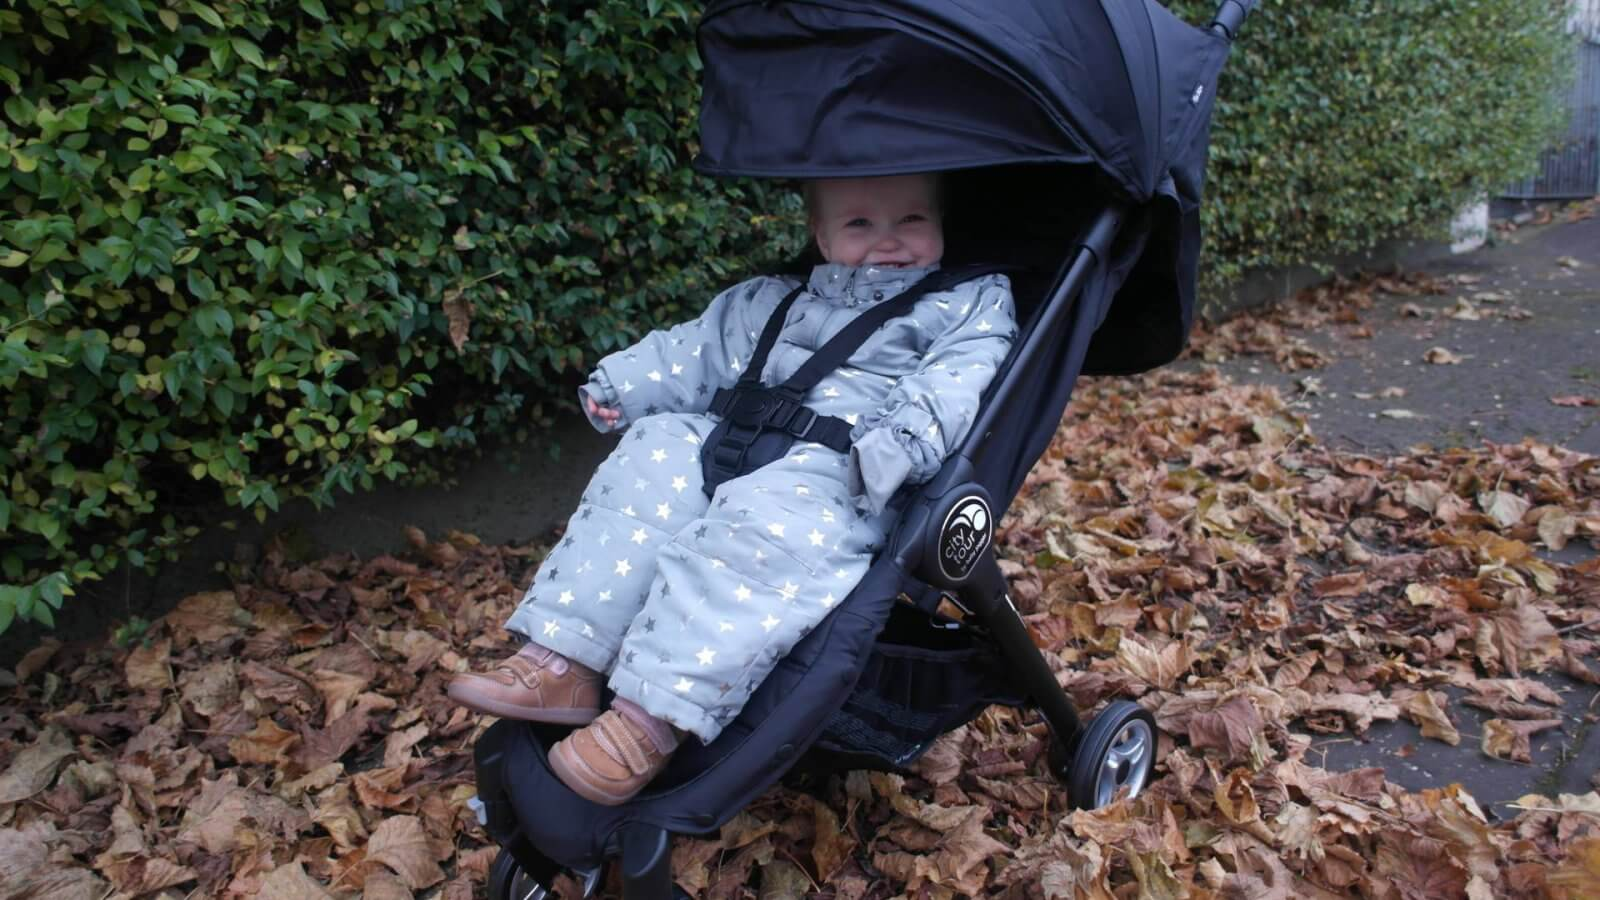 Baby Jogger City Tour Super Compact Buggy Review